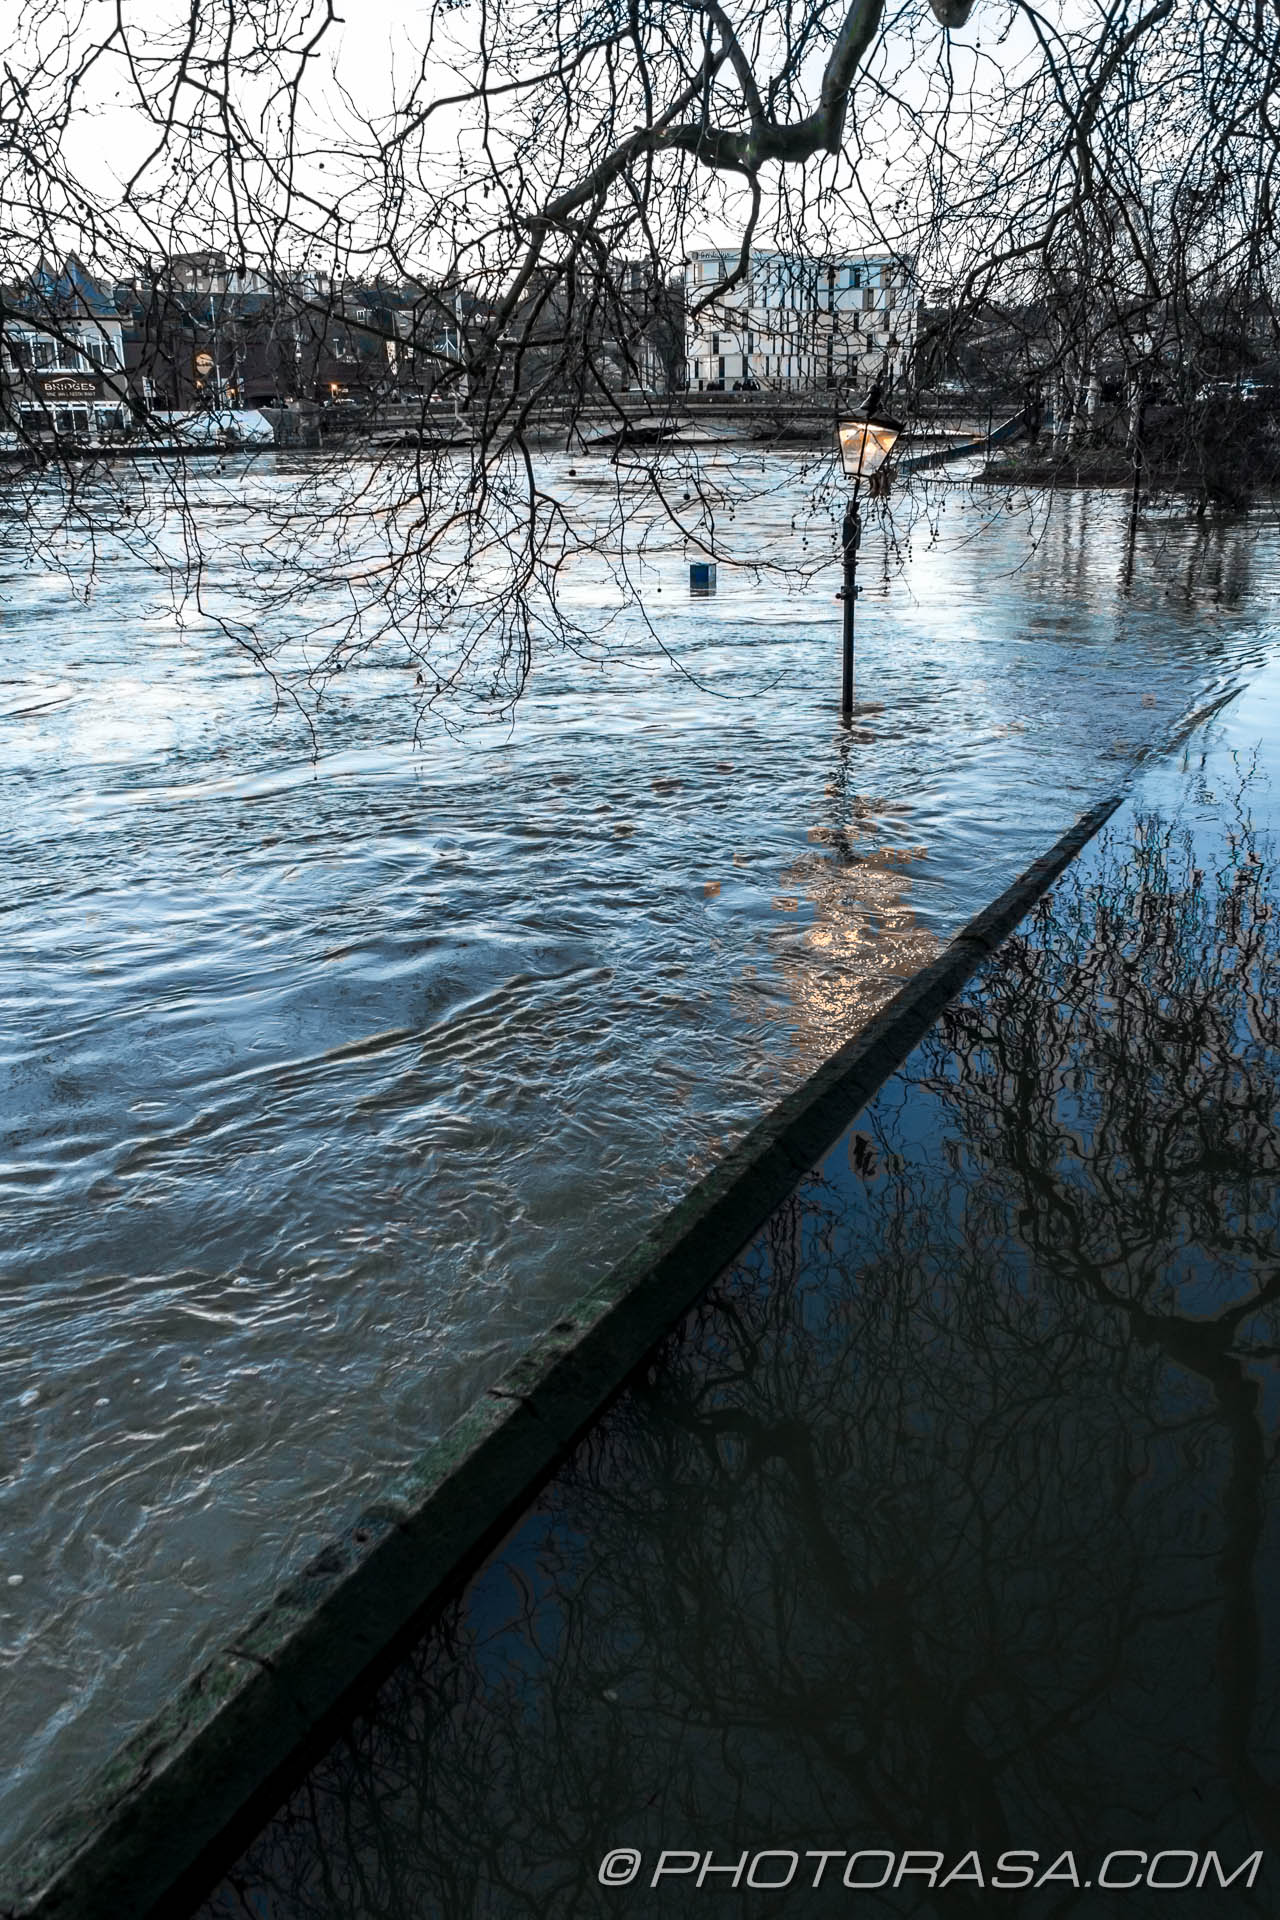 http://photorasa.com/wet-xmas-maidstone-river-medway-floods-town-centre/water-patterns/